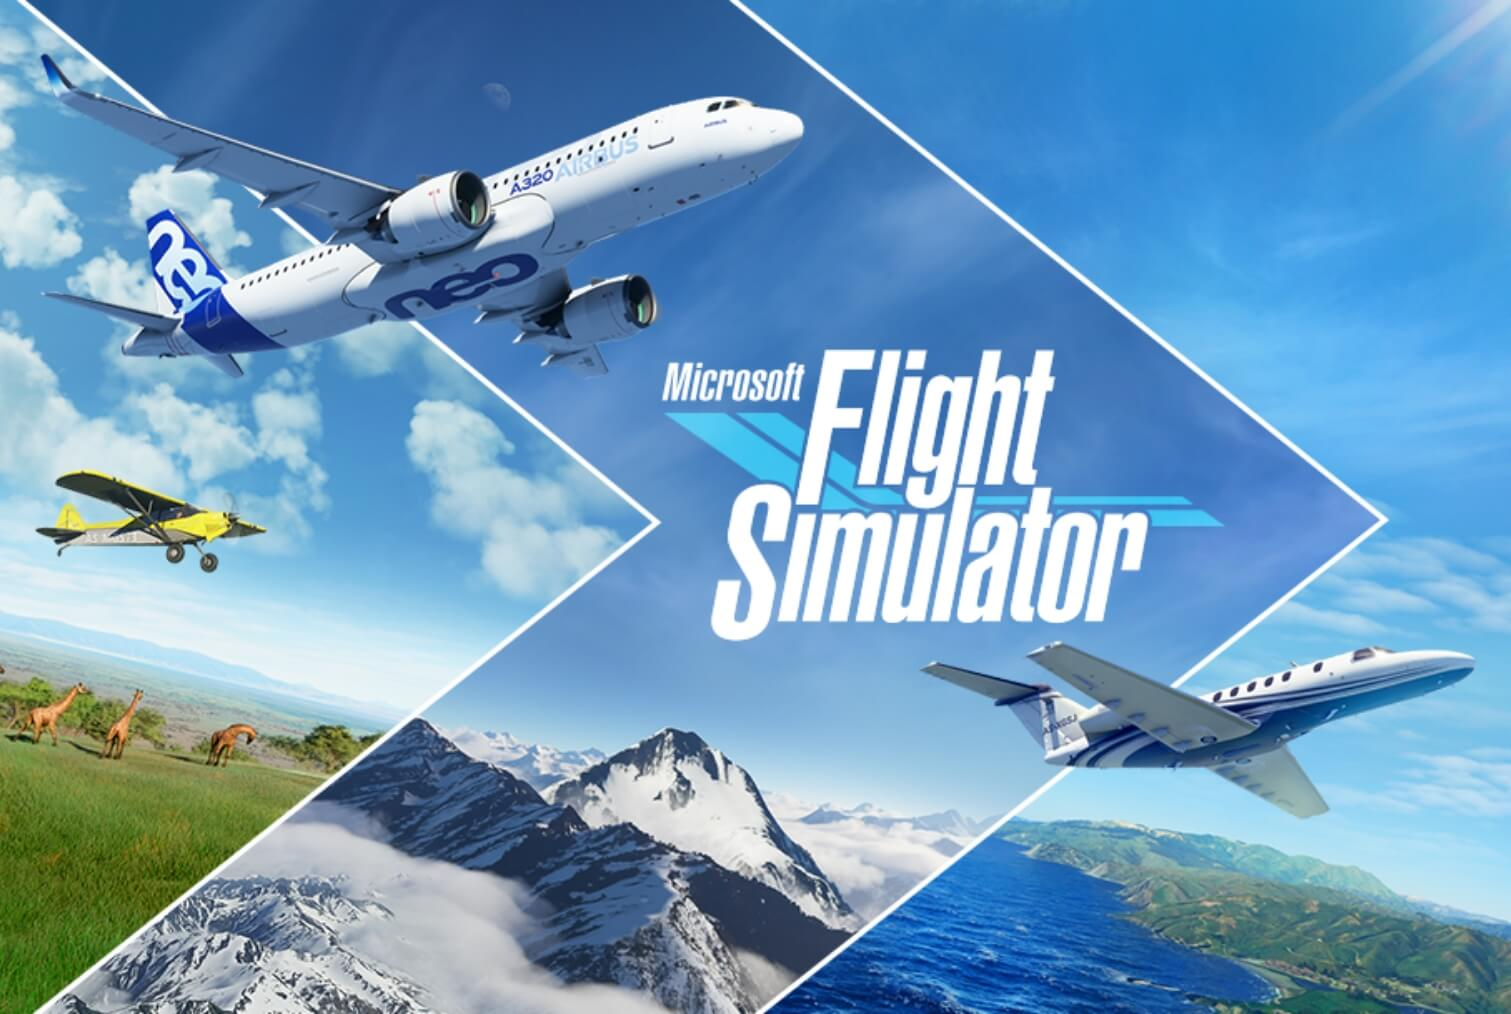 Microsoft Flight Simulator Microsoft Flight Simulator Trailer Video Still